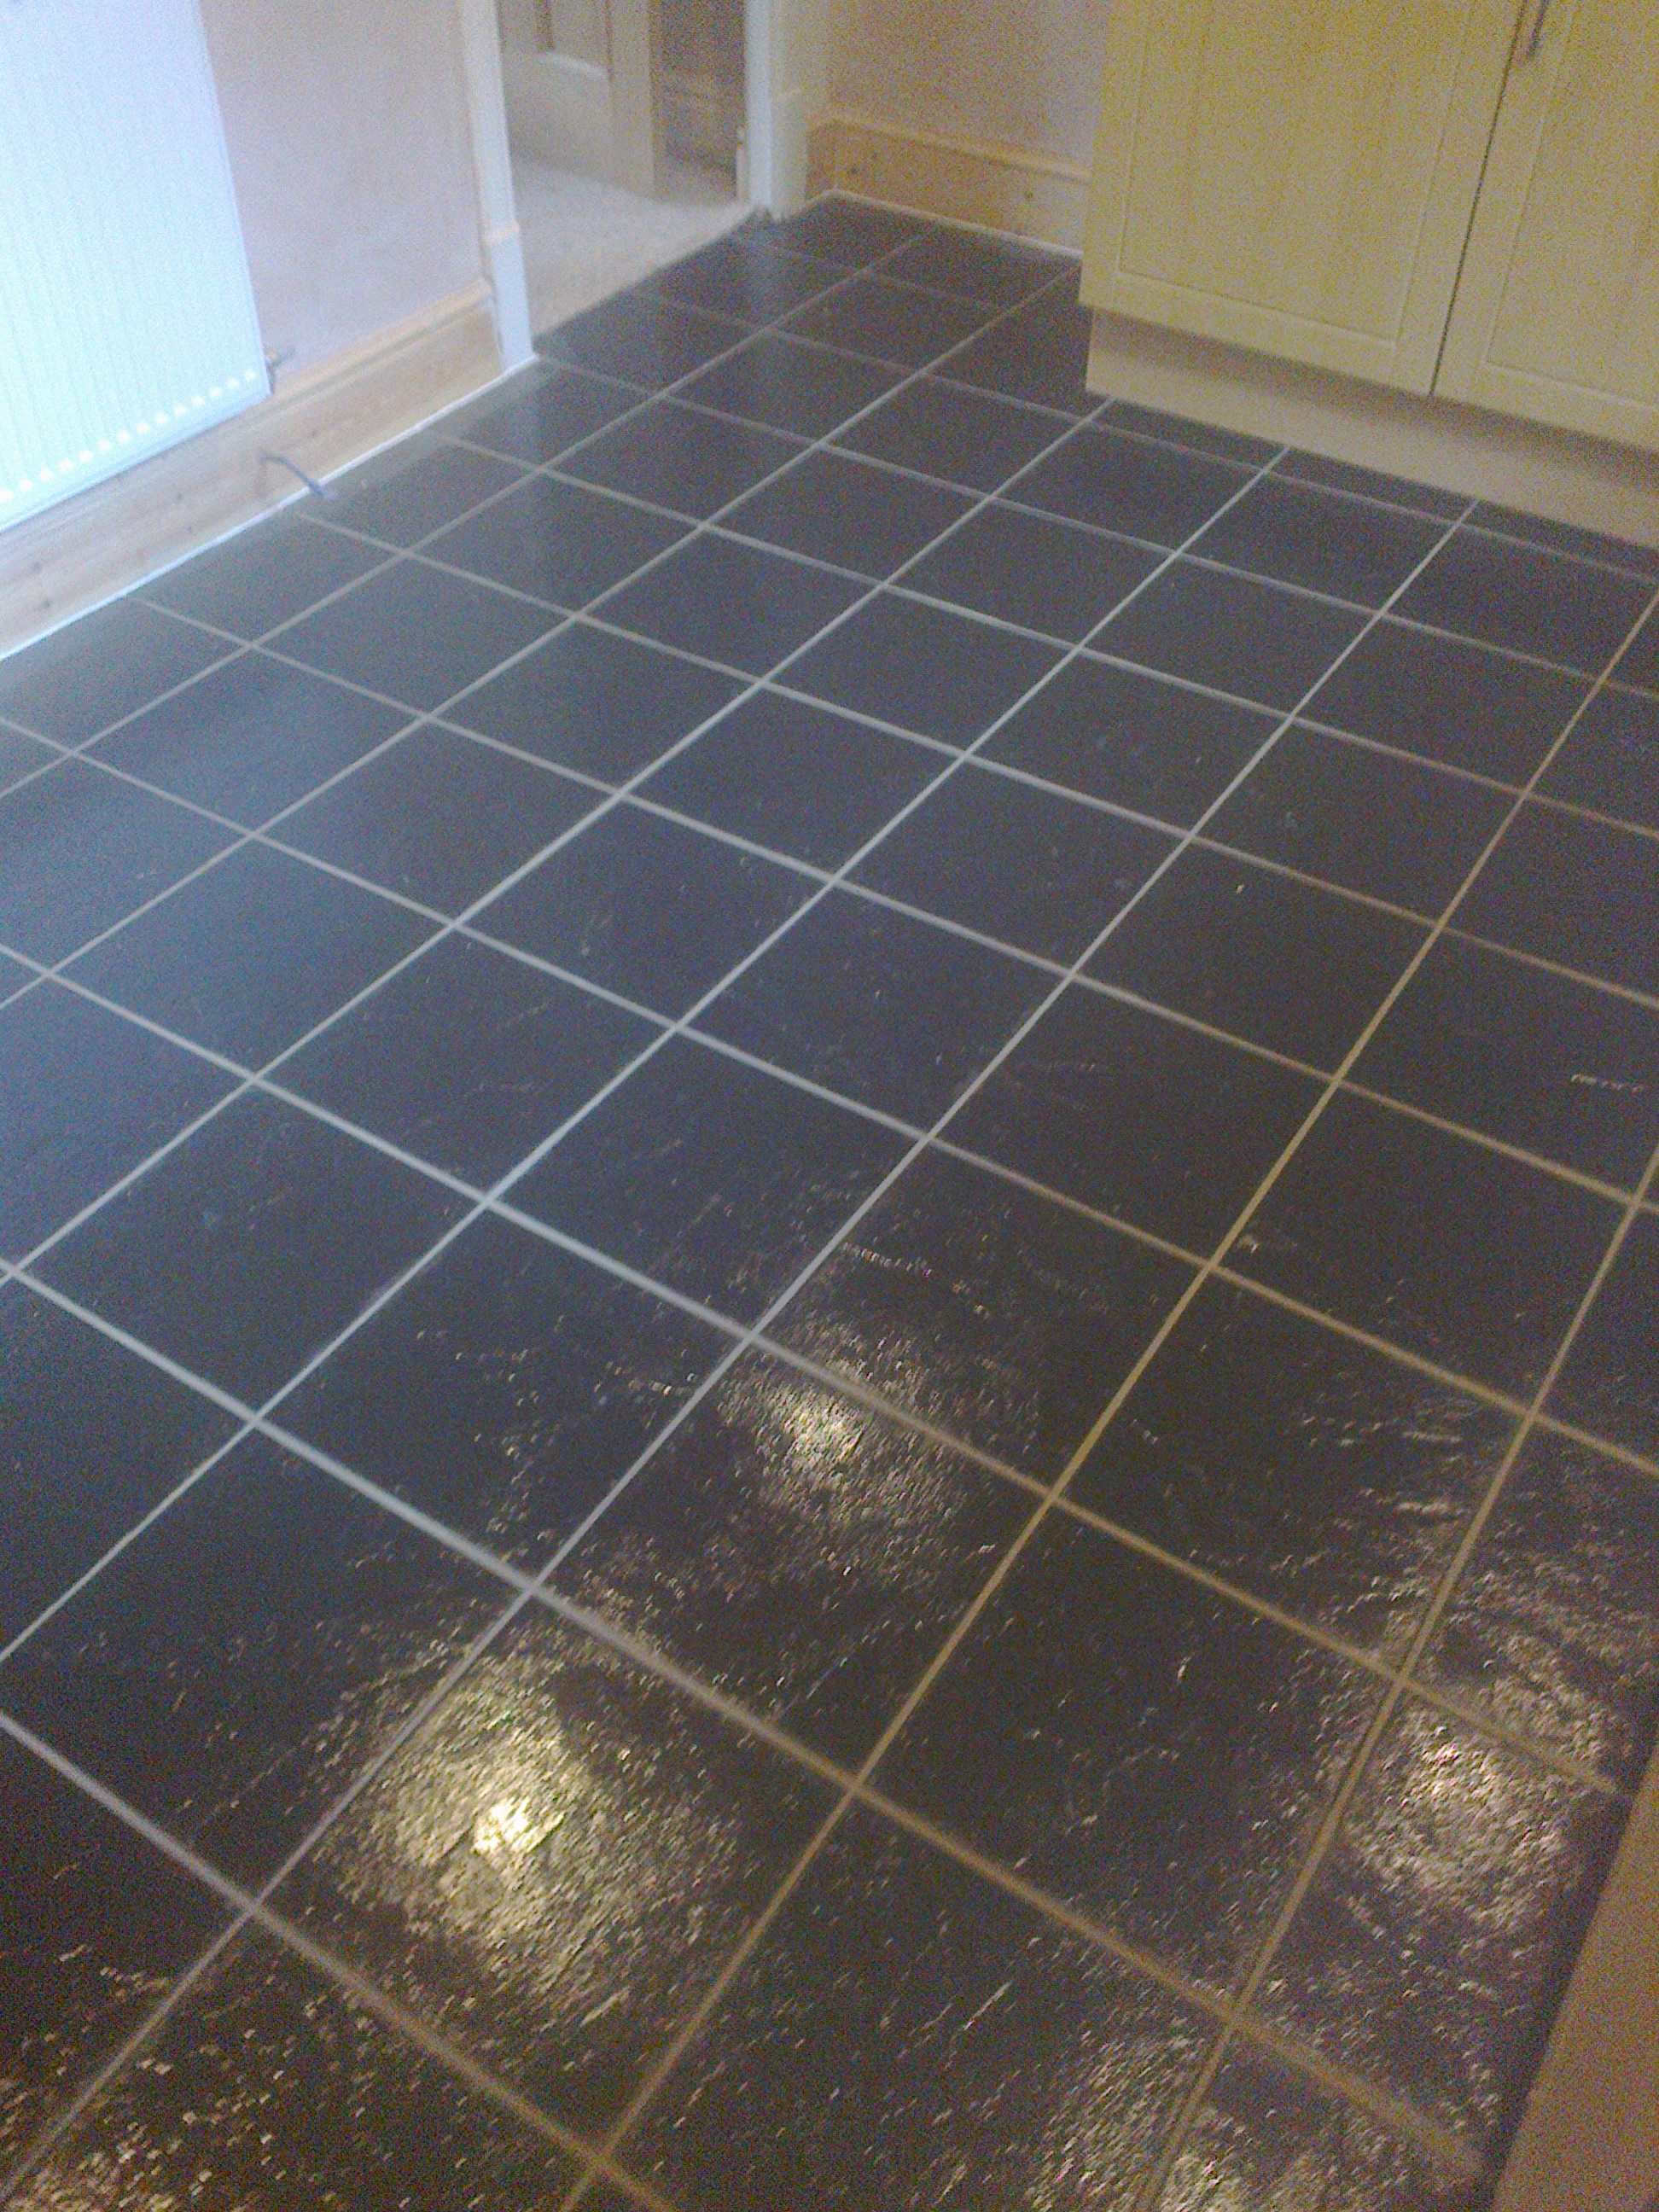 Kitchen floor tiled